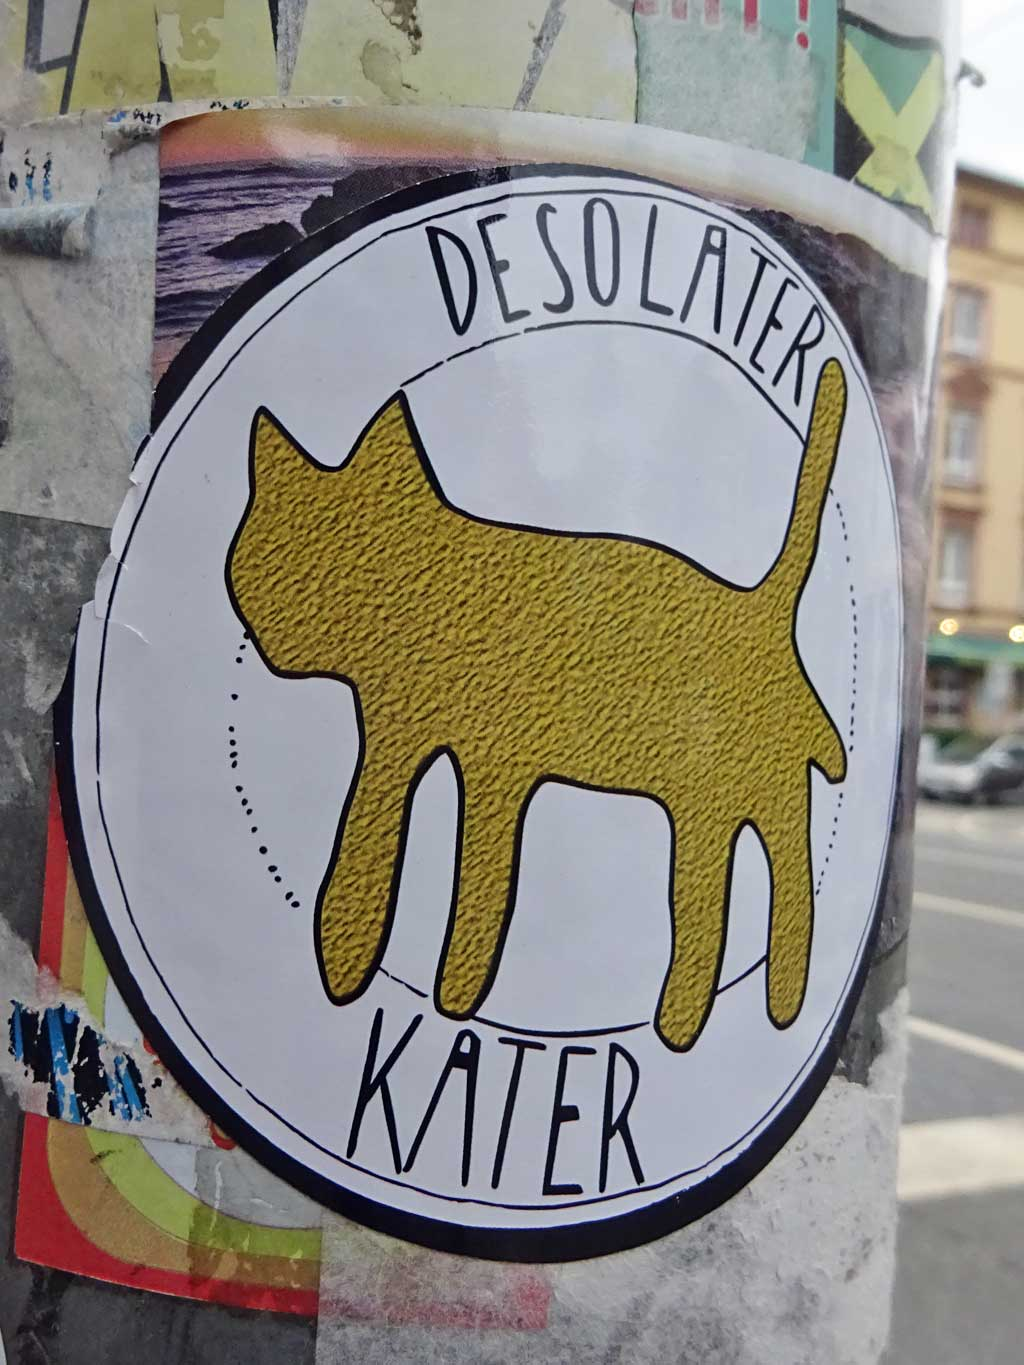 Sticker Art - Desolater Kater